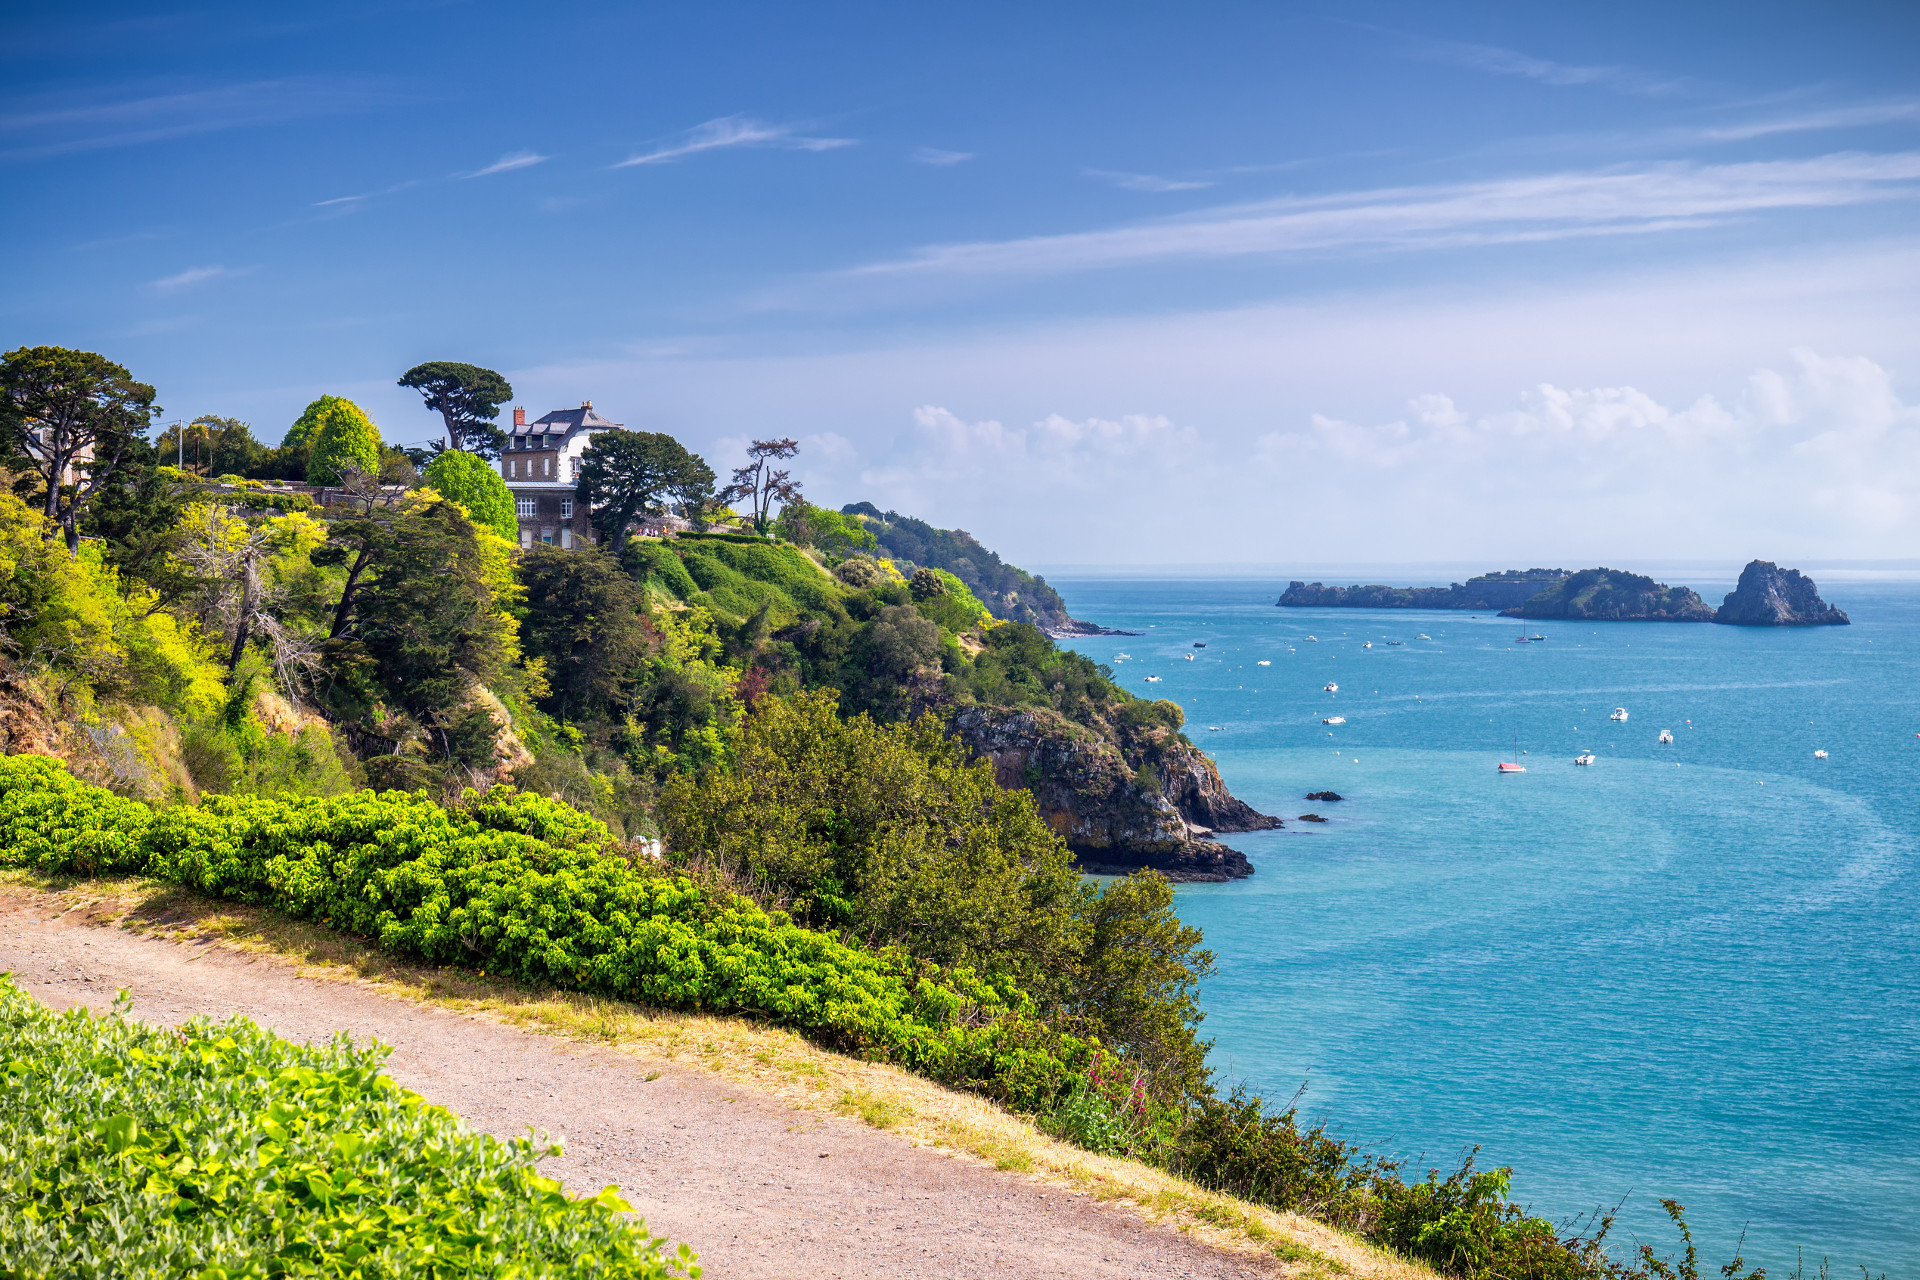 France-brittany-st malo-emerald coast-private walking tour 2